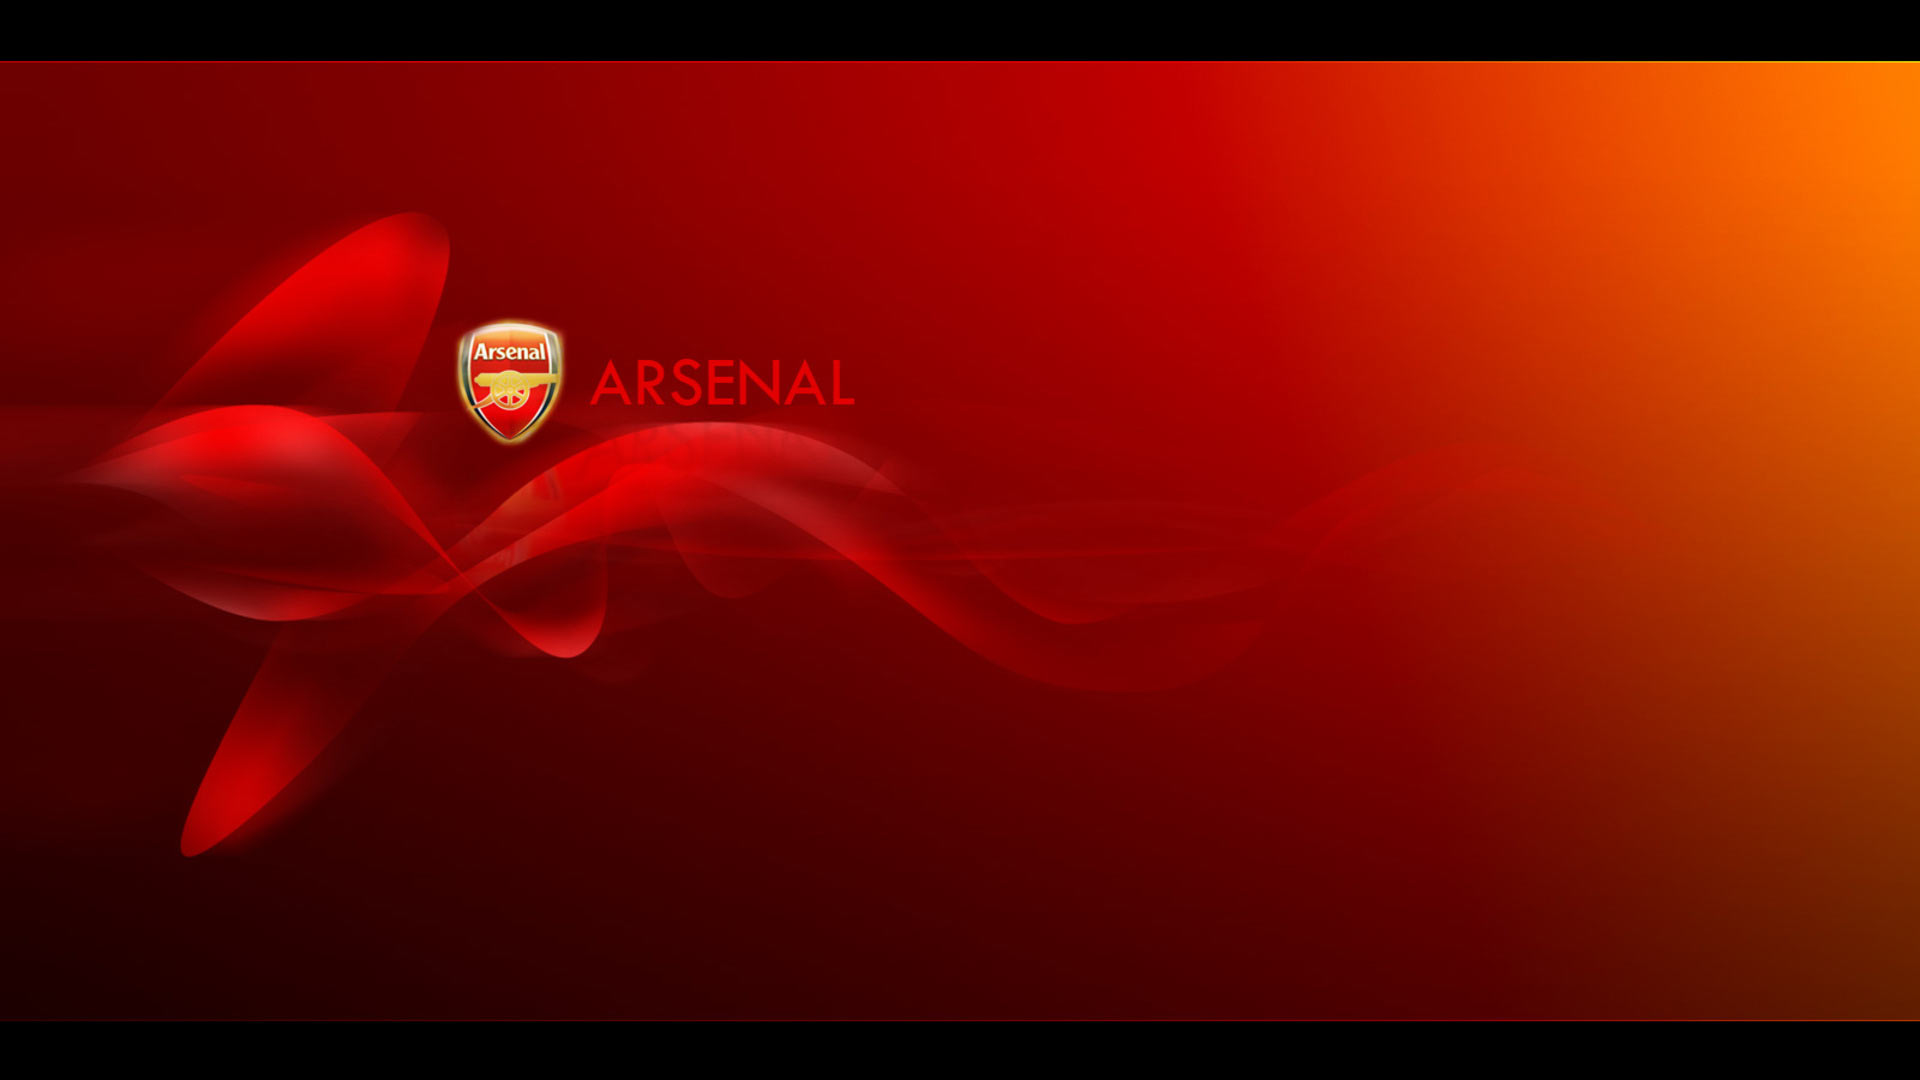 Arsenal Wallpaper For Iphone 6 Arsenal Full Hd Wallpaper And Background Image 1920x1080